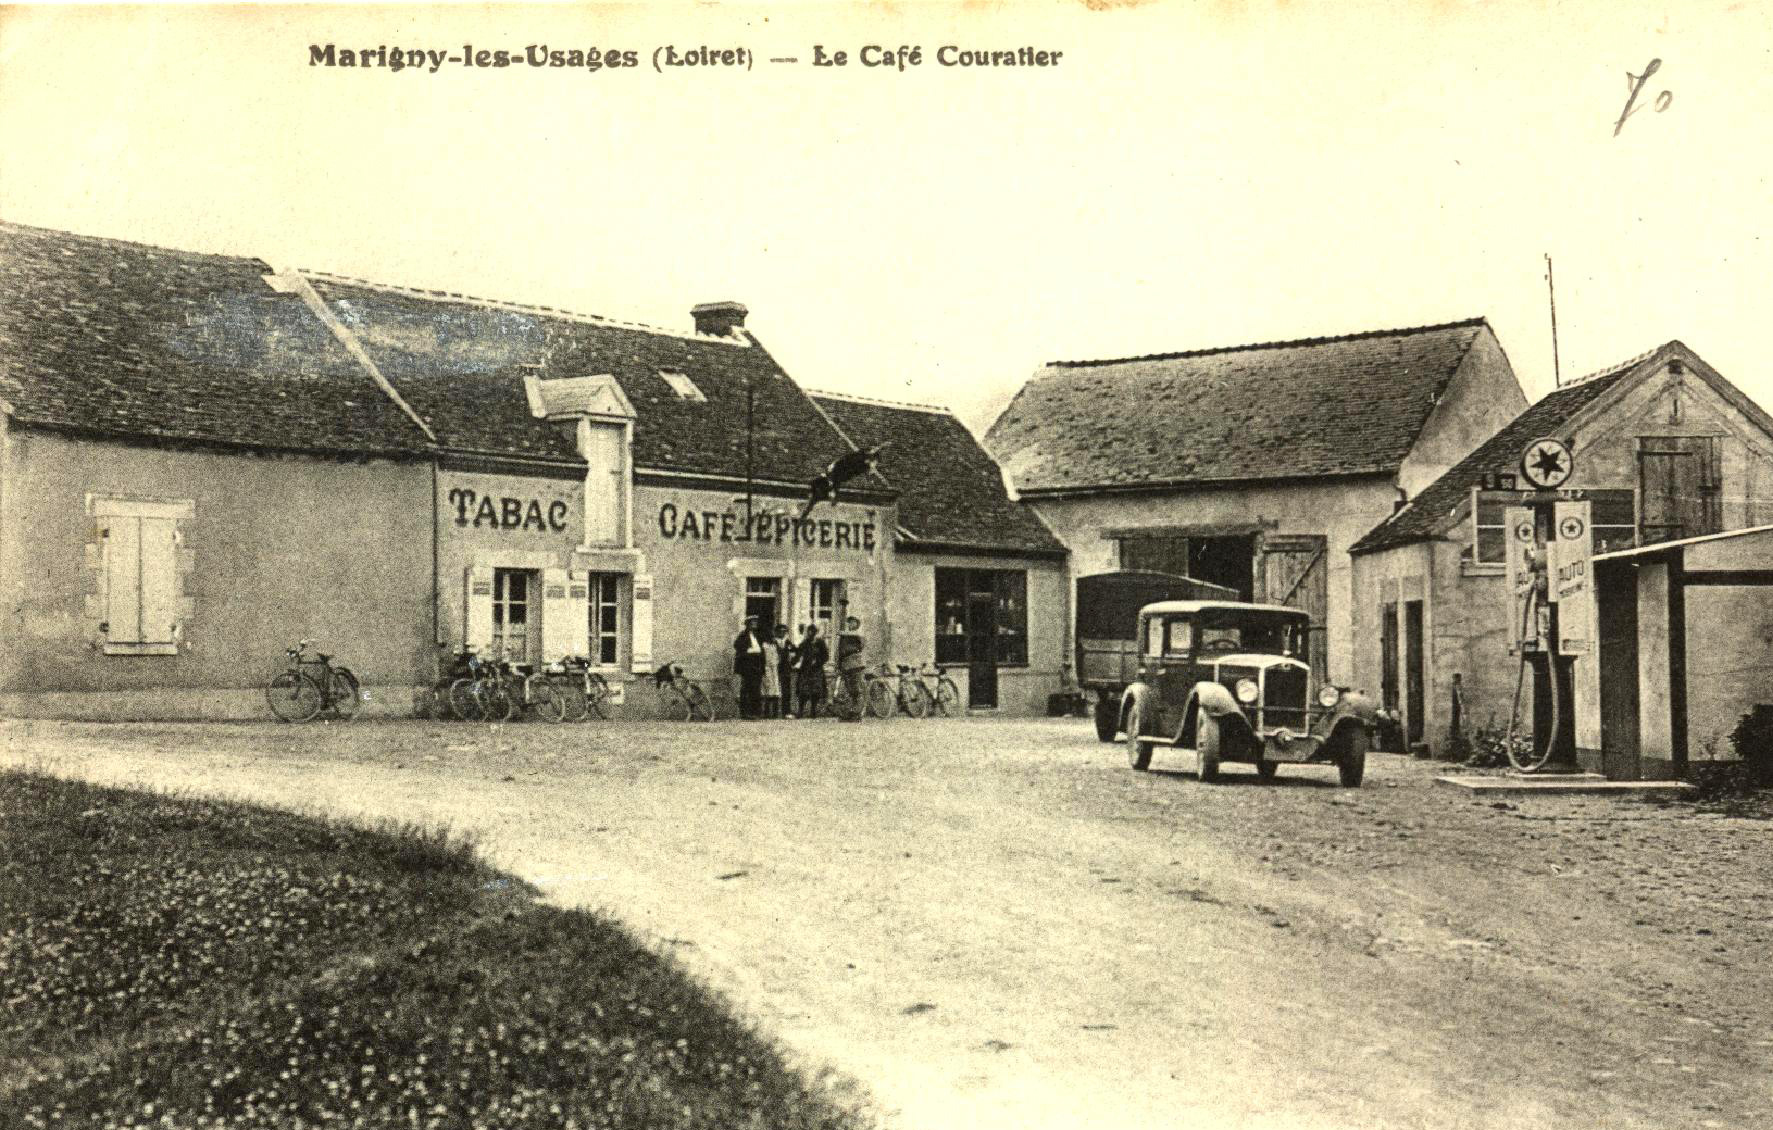 Marigny les Usages Cafe Couratier